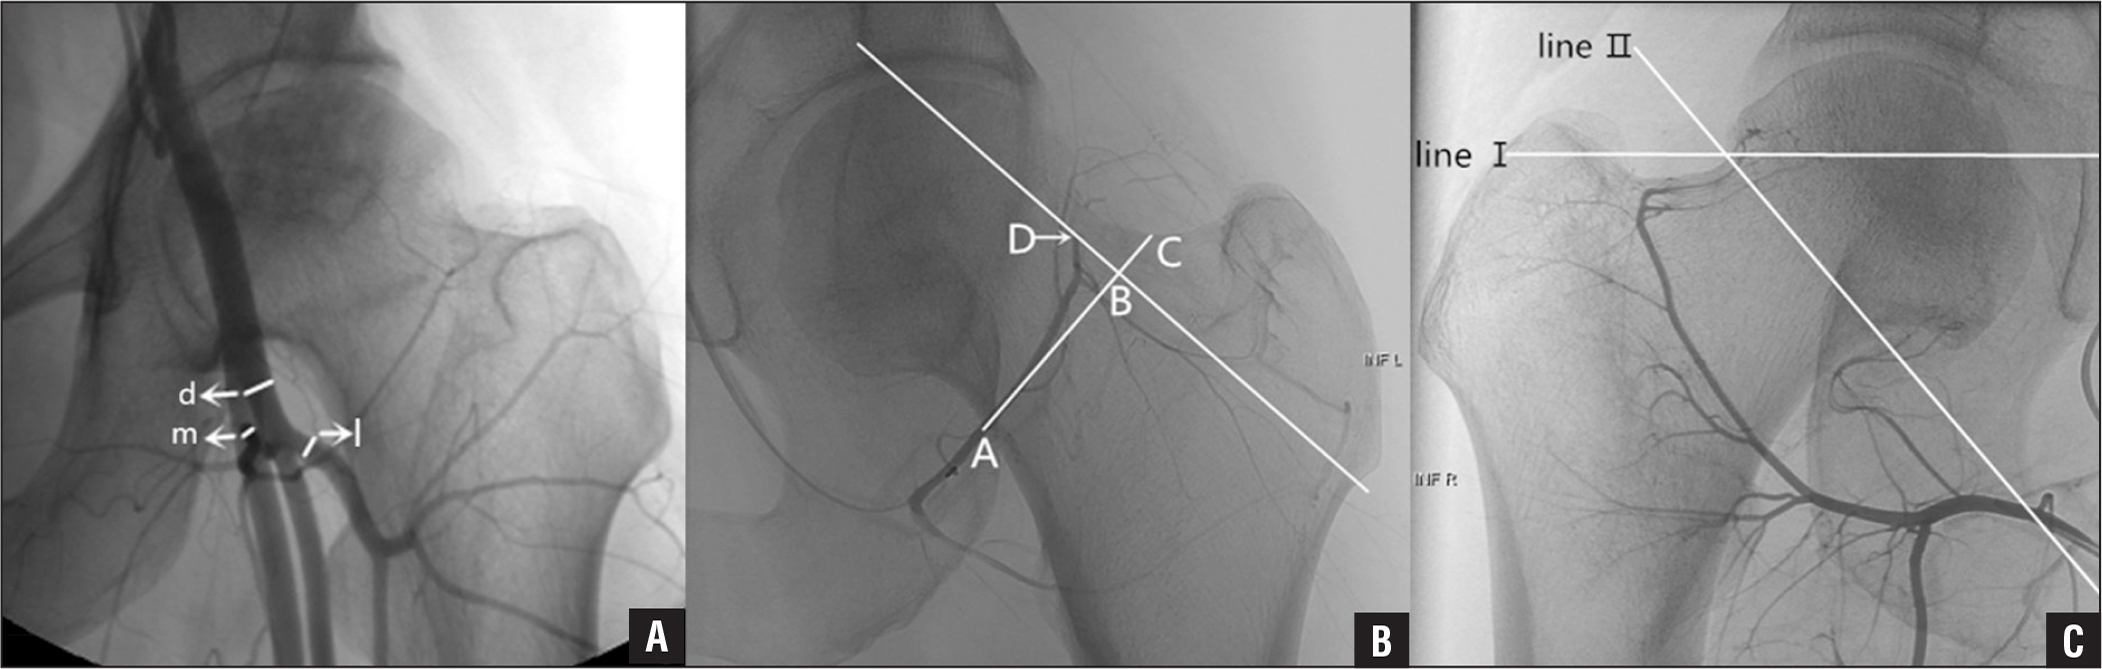 d, Diameter of the deep femoral artery (DFA); m, diameter of the medial circumflex femoral artery (MCFA); l, diameter of the lateral circumflex femoral artery (LCFA); MCFA/DFA: m/d; LCFA/DFA: l/d (A). A: AB/AC. Point A, the projective intersection of the MCFA and the femoral neck. Point D, the projective end point of the MCFA. Point C, the crossover point of the AB extension line and the femoral neck. AB is perpendicular to the long axis of the femoral neck. BD is parallel to the long axis (B). Line I: a horizontal line at the upper junction of the femoral head and neck. Line II: the line that connects the upper and lower junctions of the femoral head and neck (C).